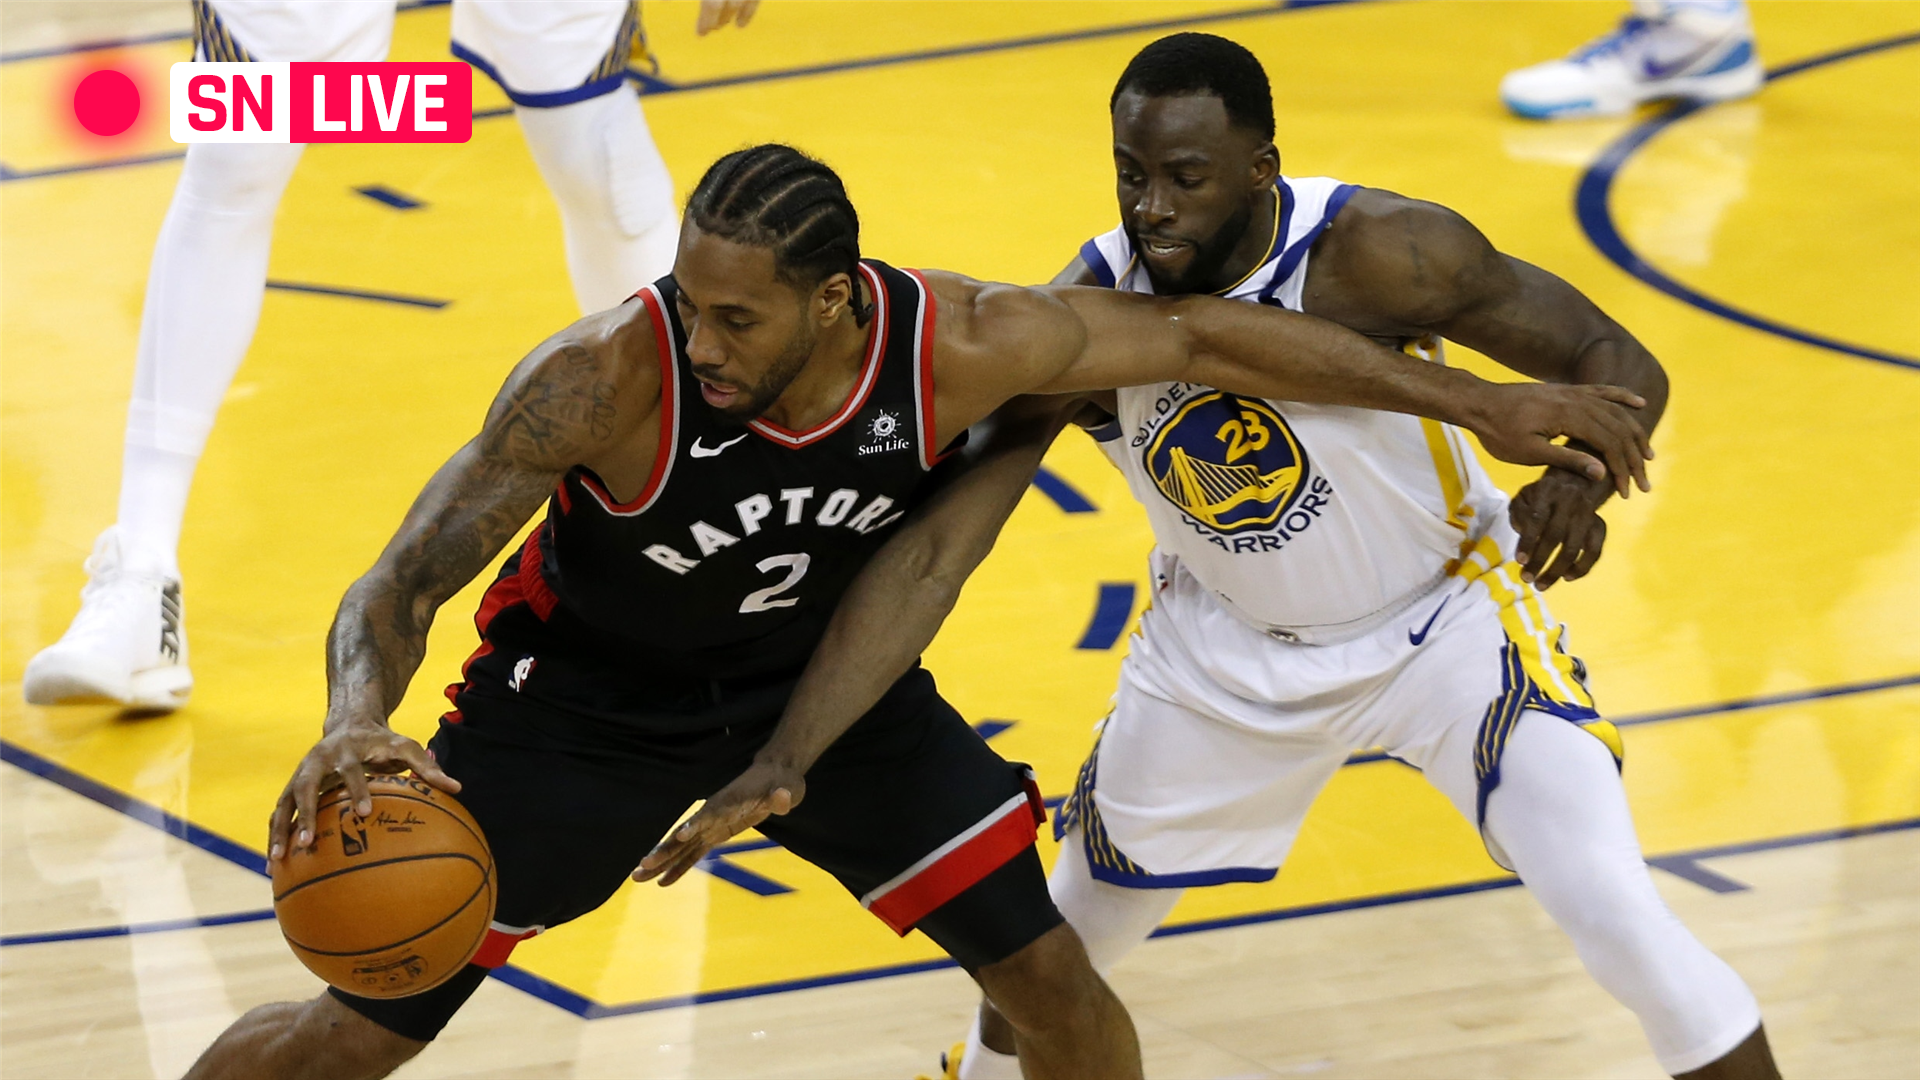 Raptors vs. Warriors results: Toronto wins franchise's first-ever NBA title